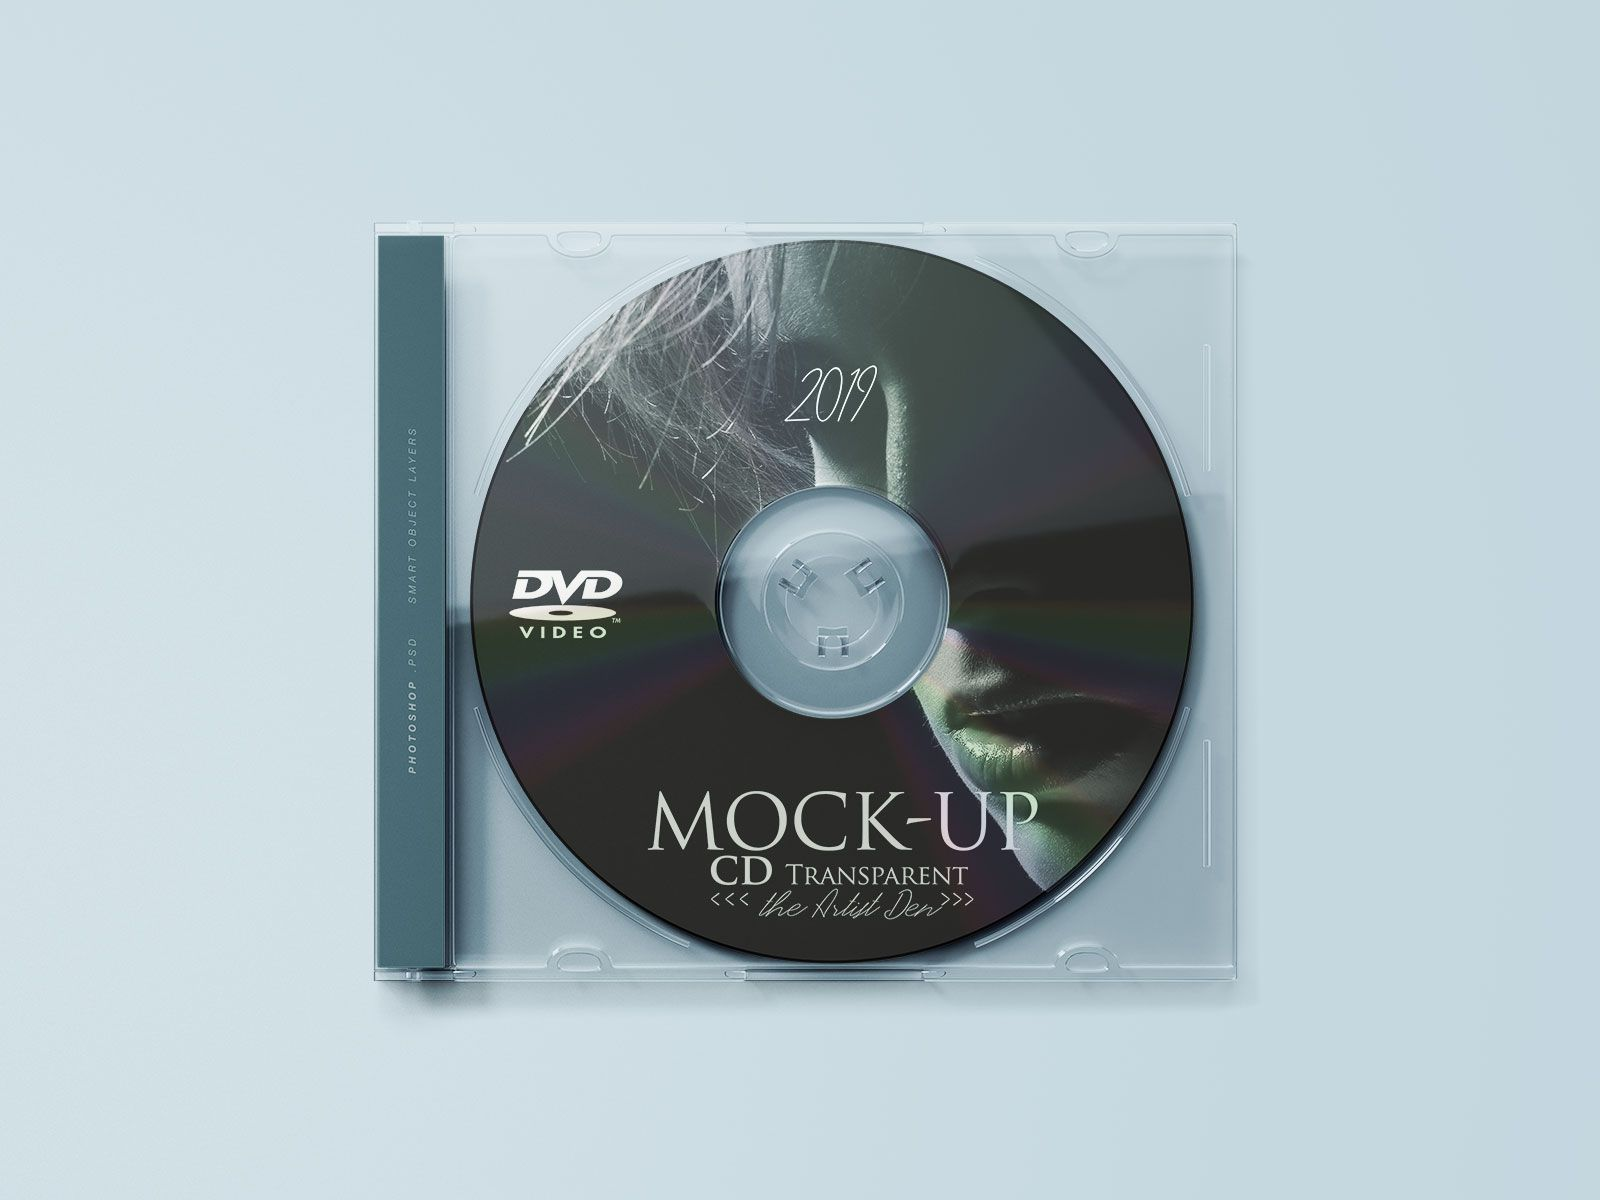 006 Surprising Free Cd Cover Design Template Photoshop High Resolution  Label Psd DownloadFull